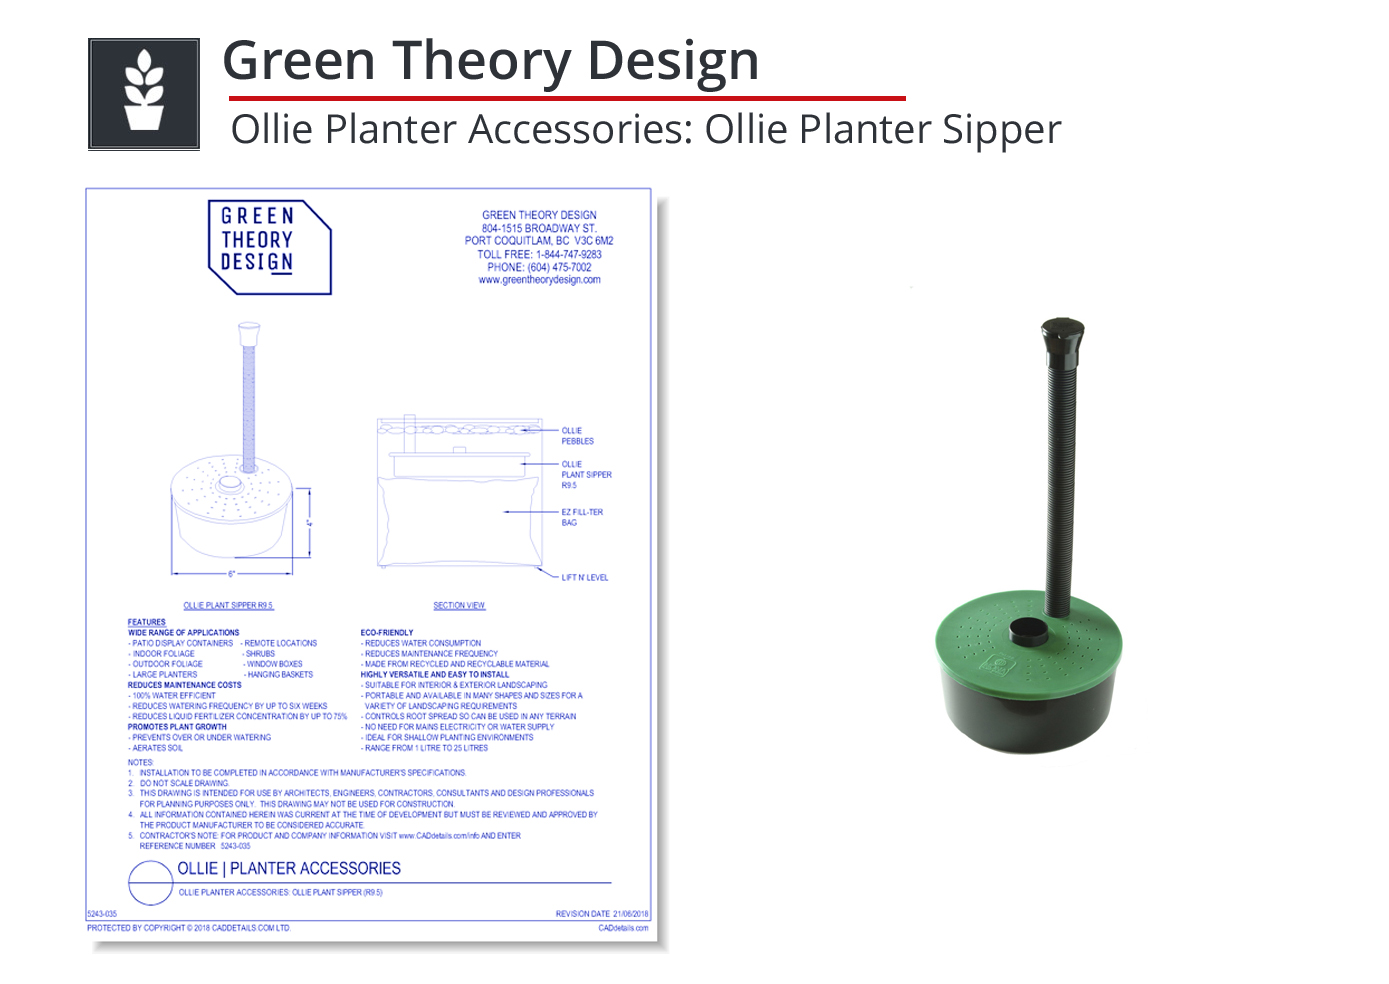 Green-Theory-Design-Ollie-Plant-Accessories-Ollie-Plant-Sipper-CAD-Drawing-1.jpg